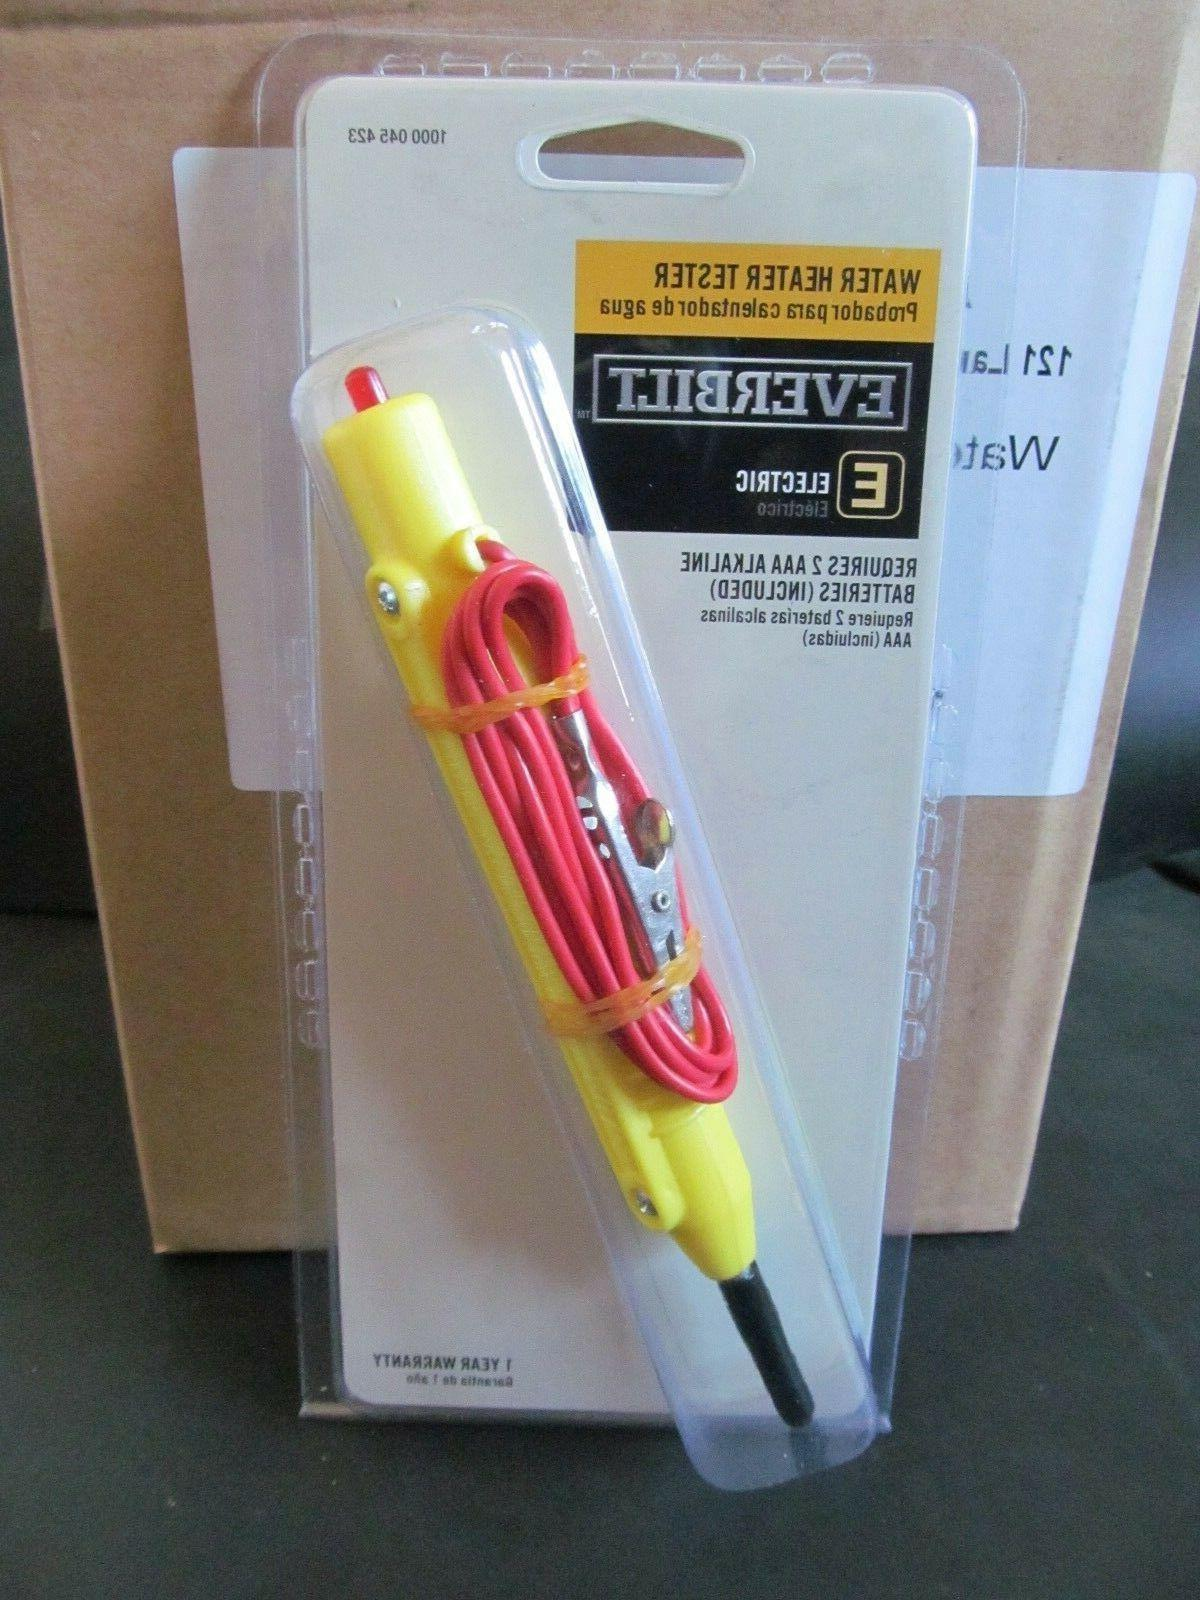 EVERBILT ELECTRIC WATER HEATER TESTER 1000 045 423 SPECIAL 2